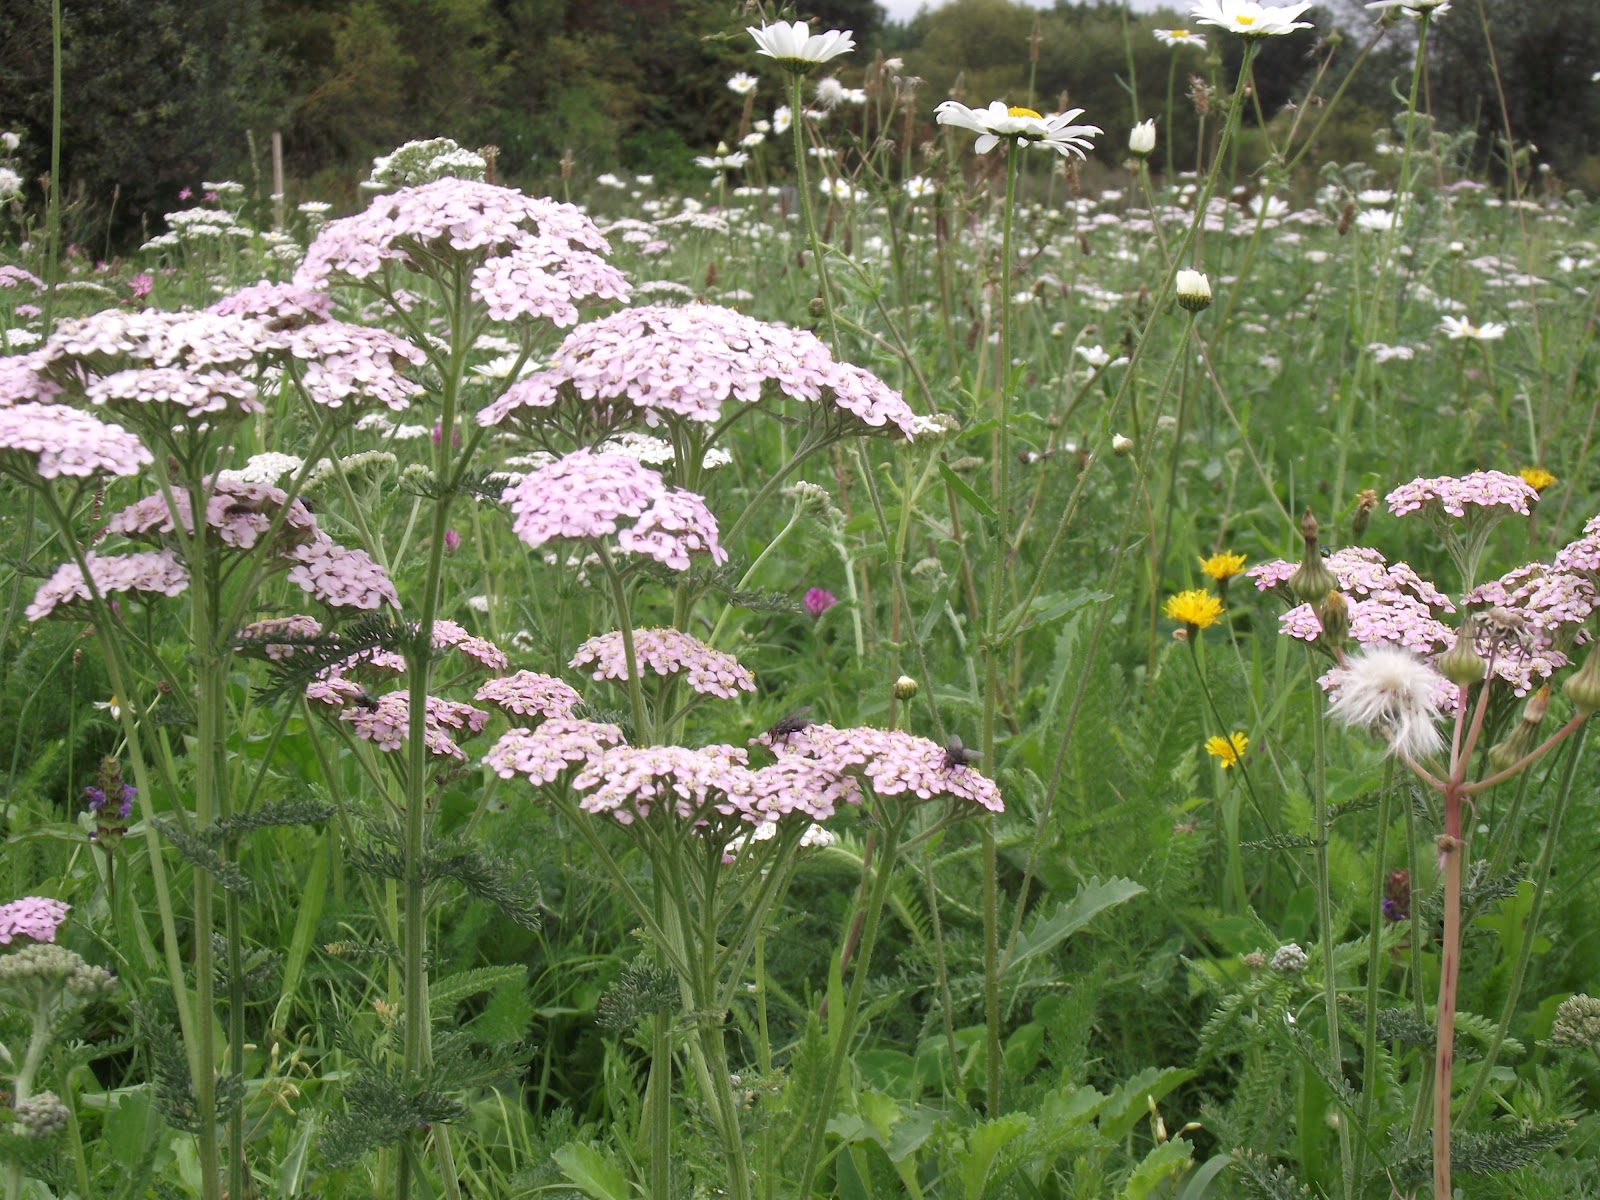 Meadowmat bringing back our wild flowers The Beauty of Yarrow